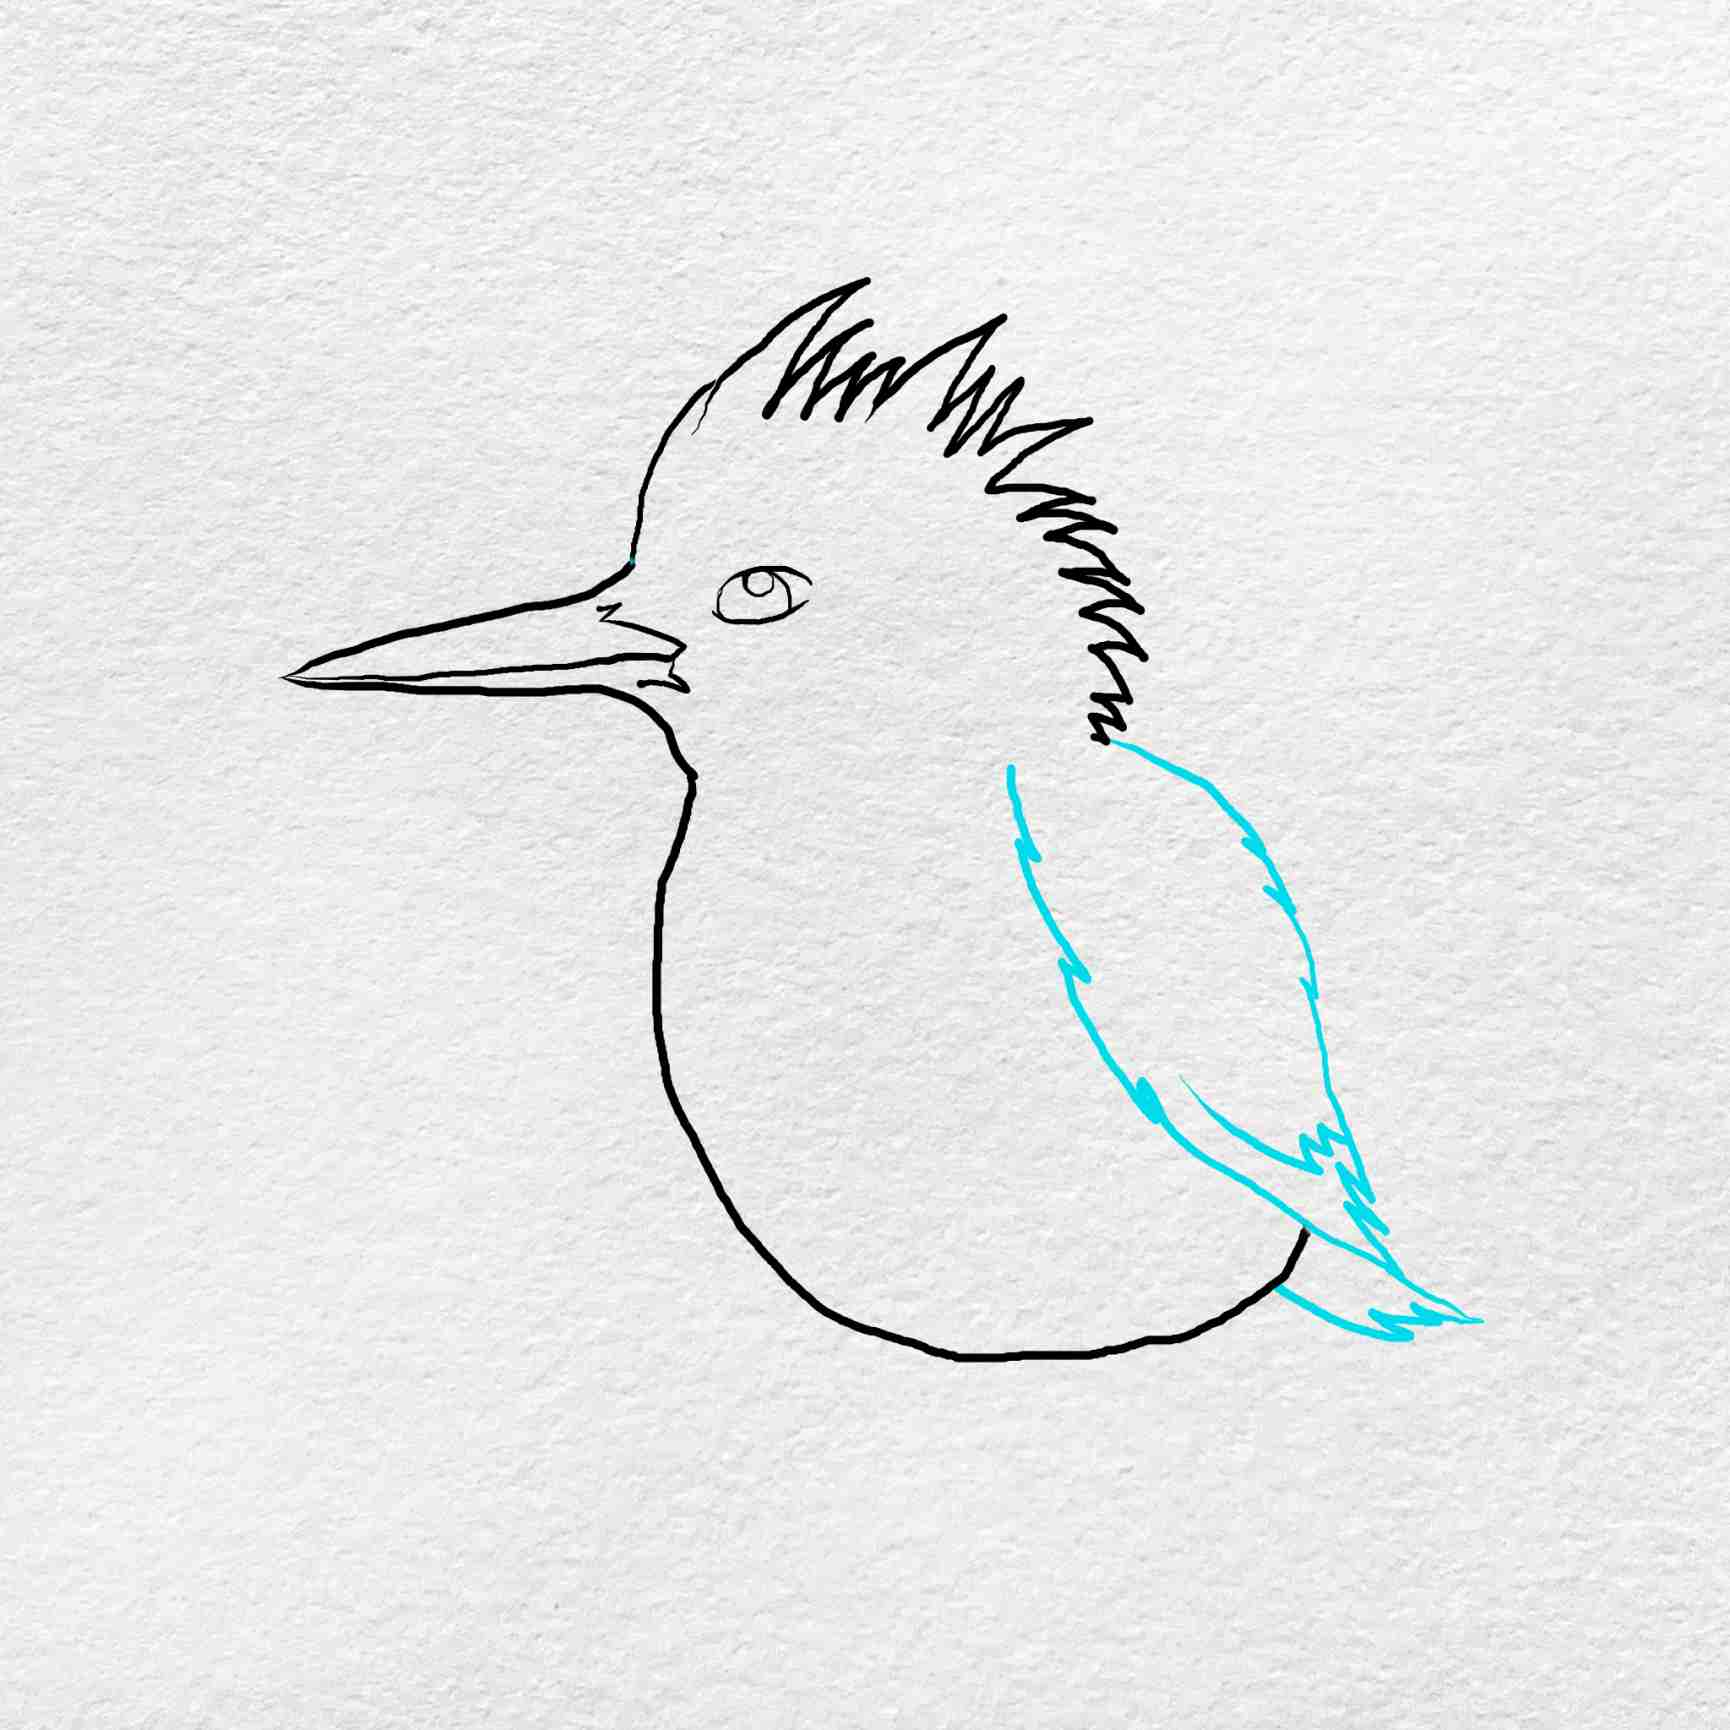 How To Draw Kingfisher: Step 4